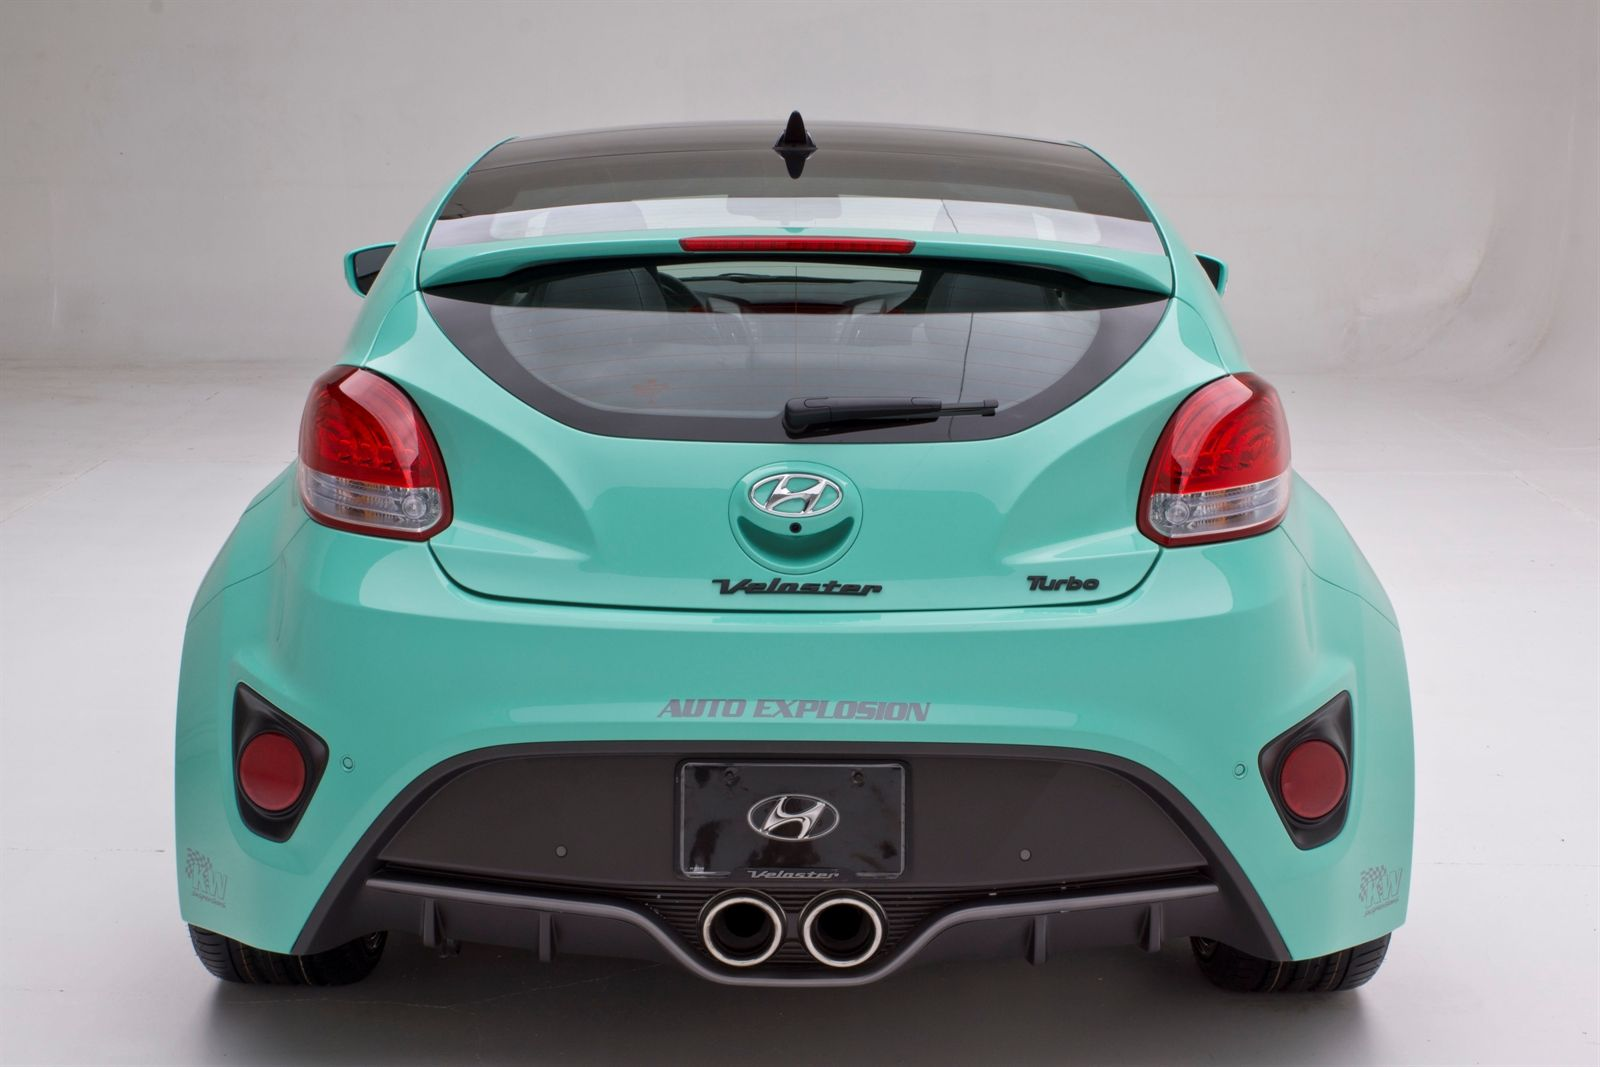 Just the right color to match my vespa veloster turbohyundai